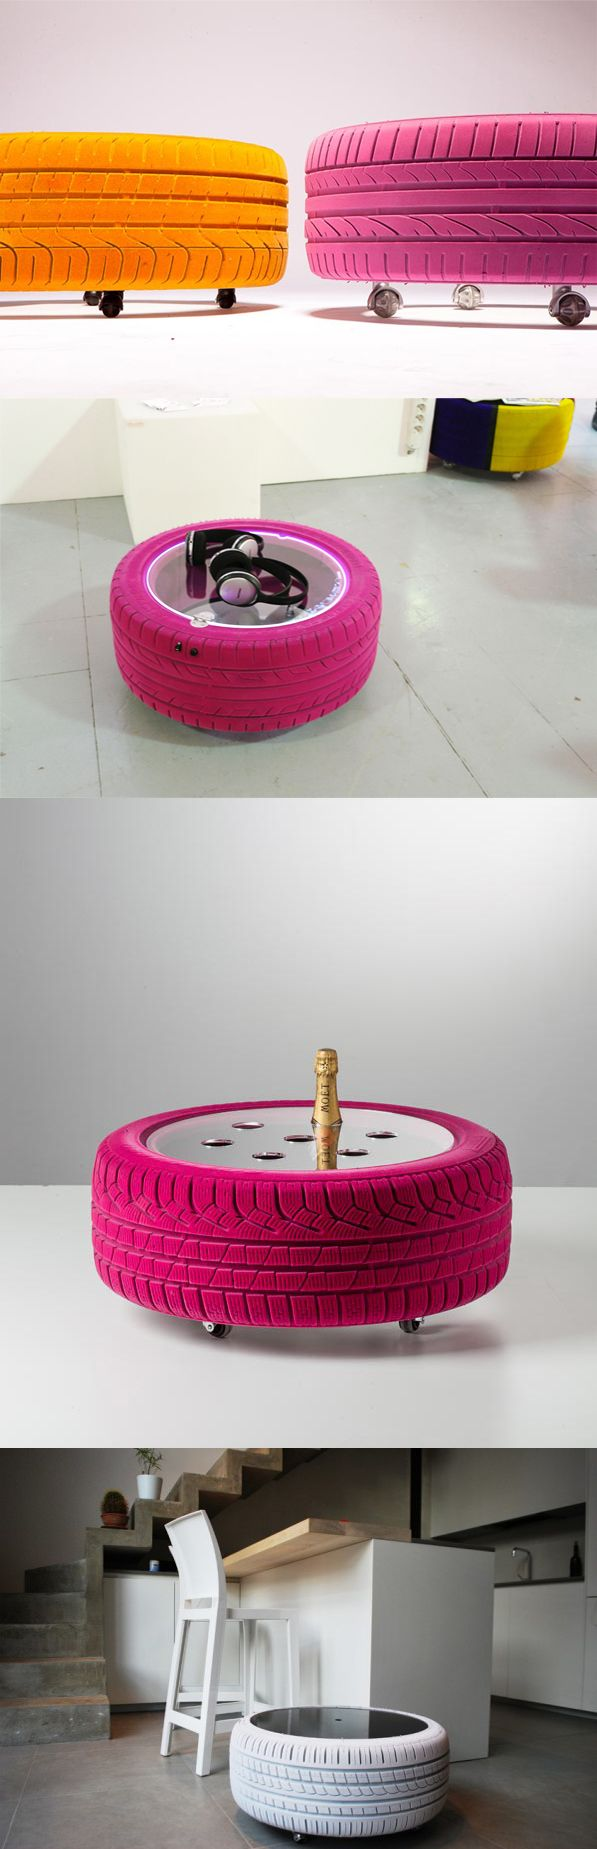 Colored tire seats/storage/whatever you want